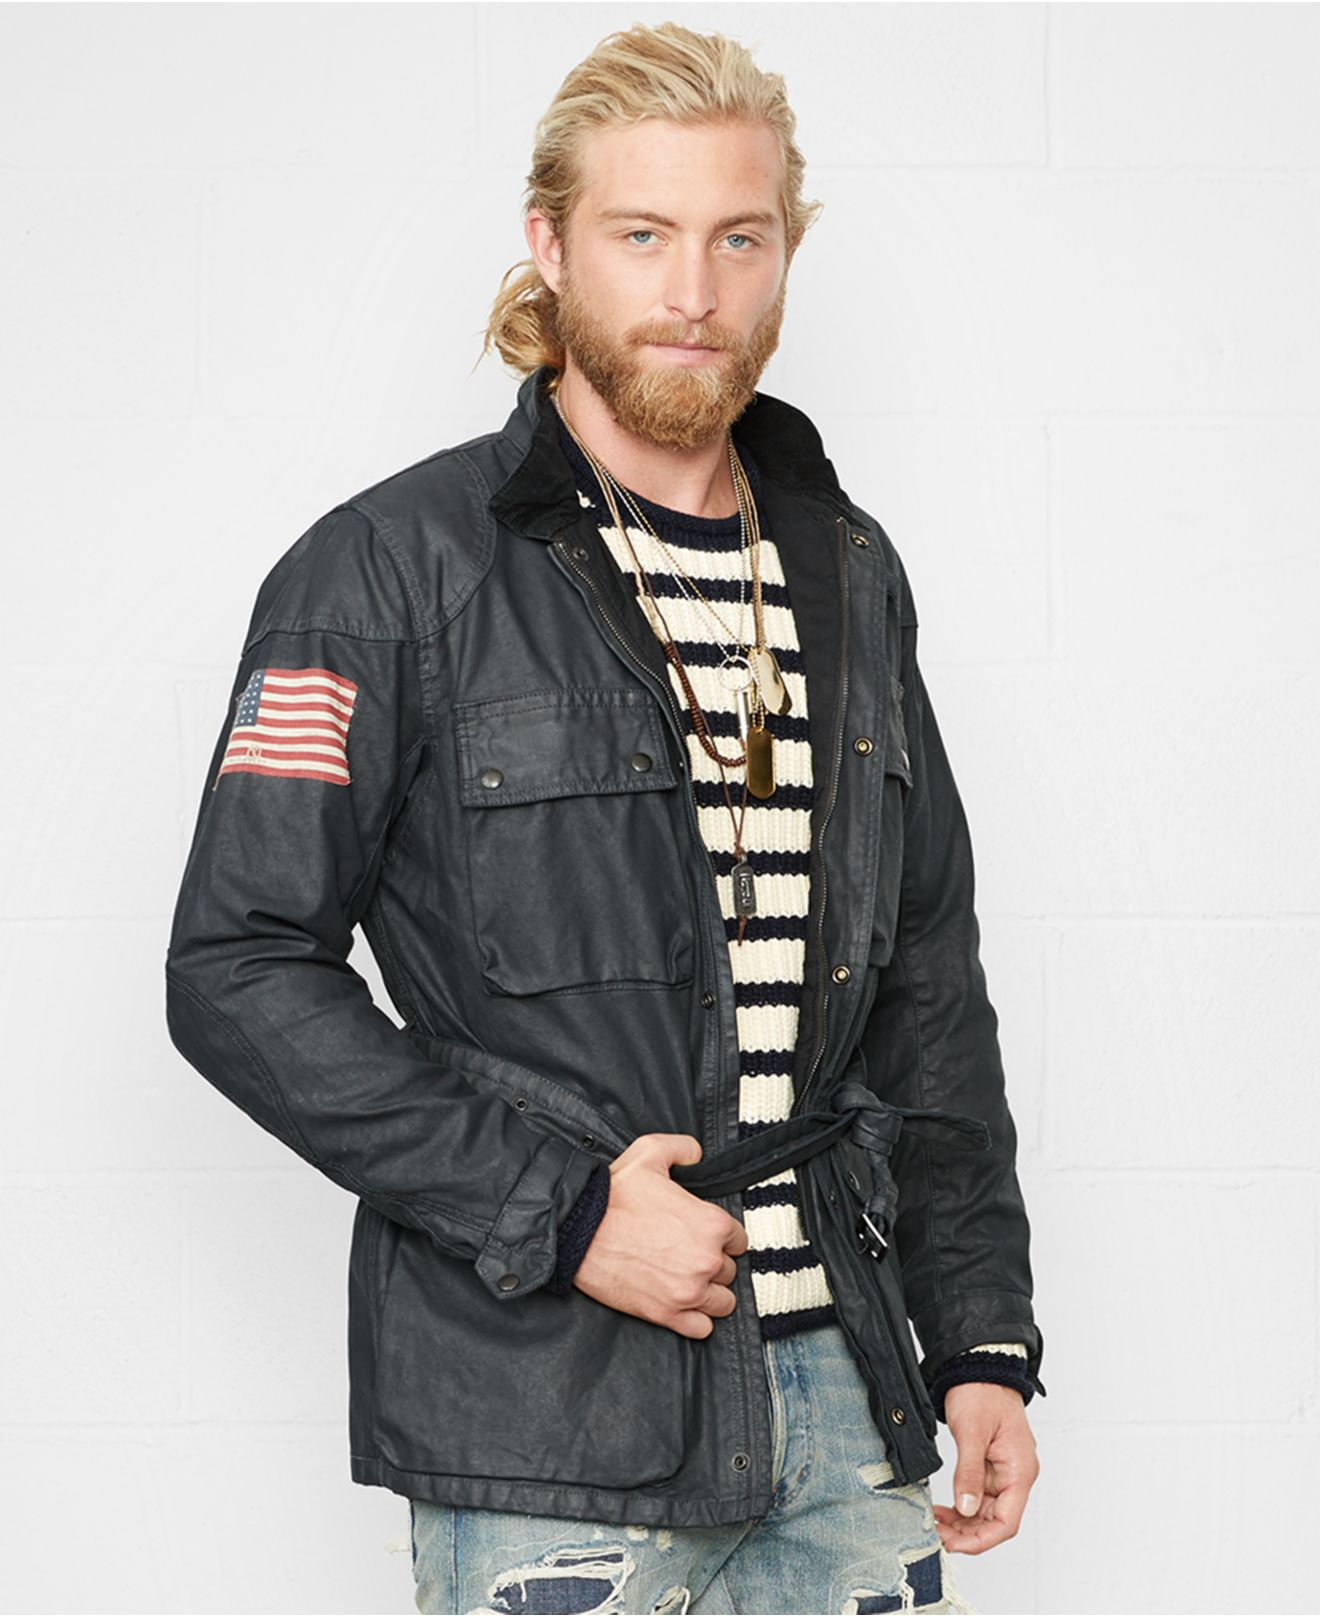 Denim and supply ralph lauren jeans jacket - Dr. E. Horn GmbH - Dr. E. Horn GmbH